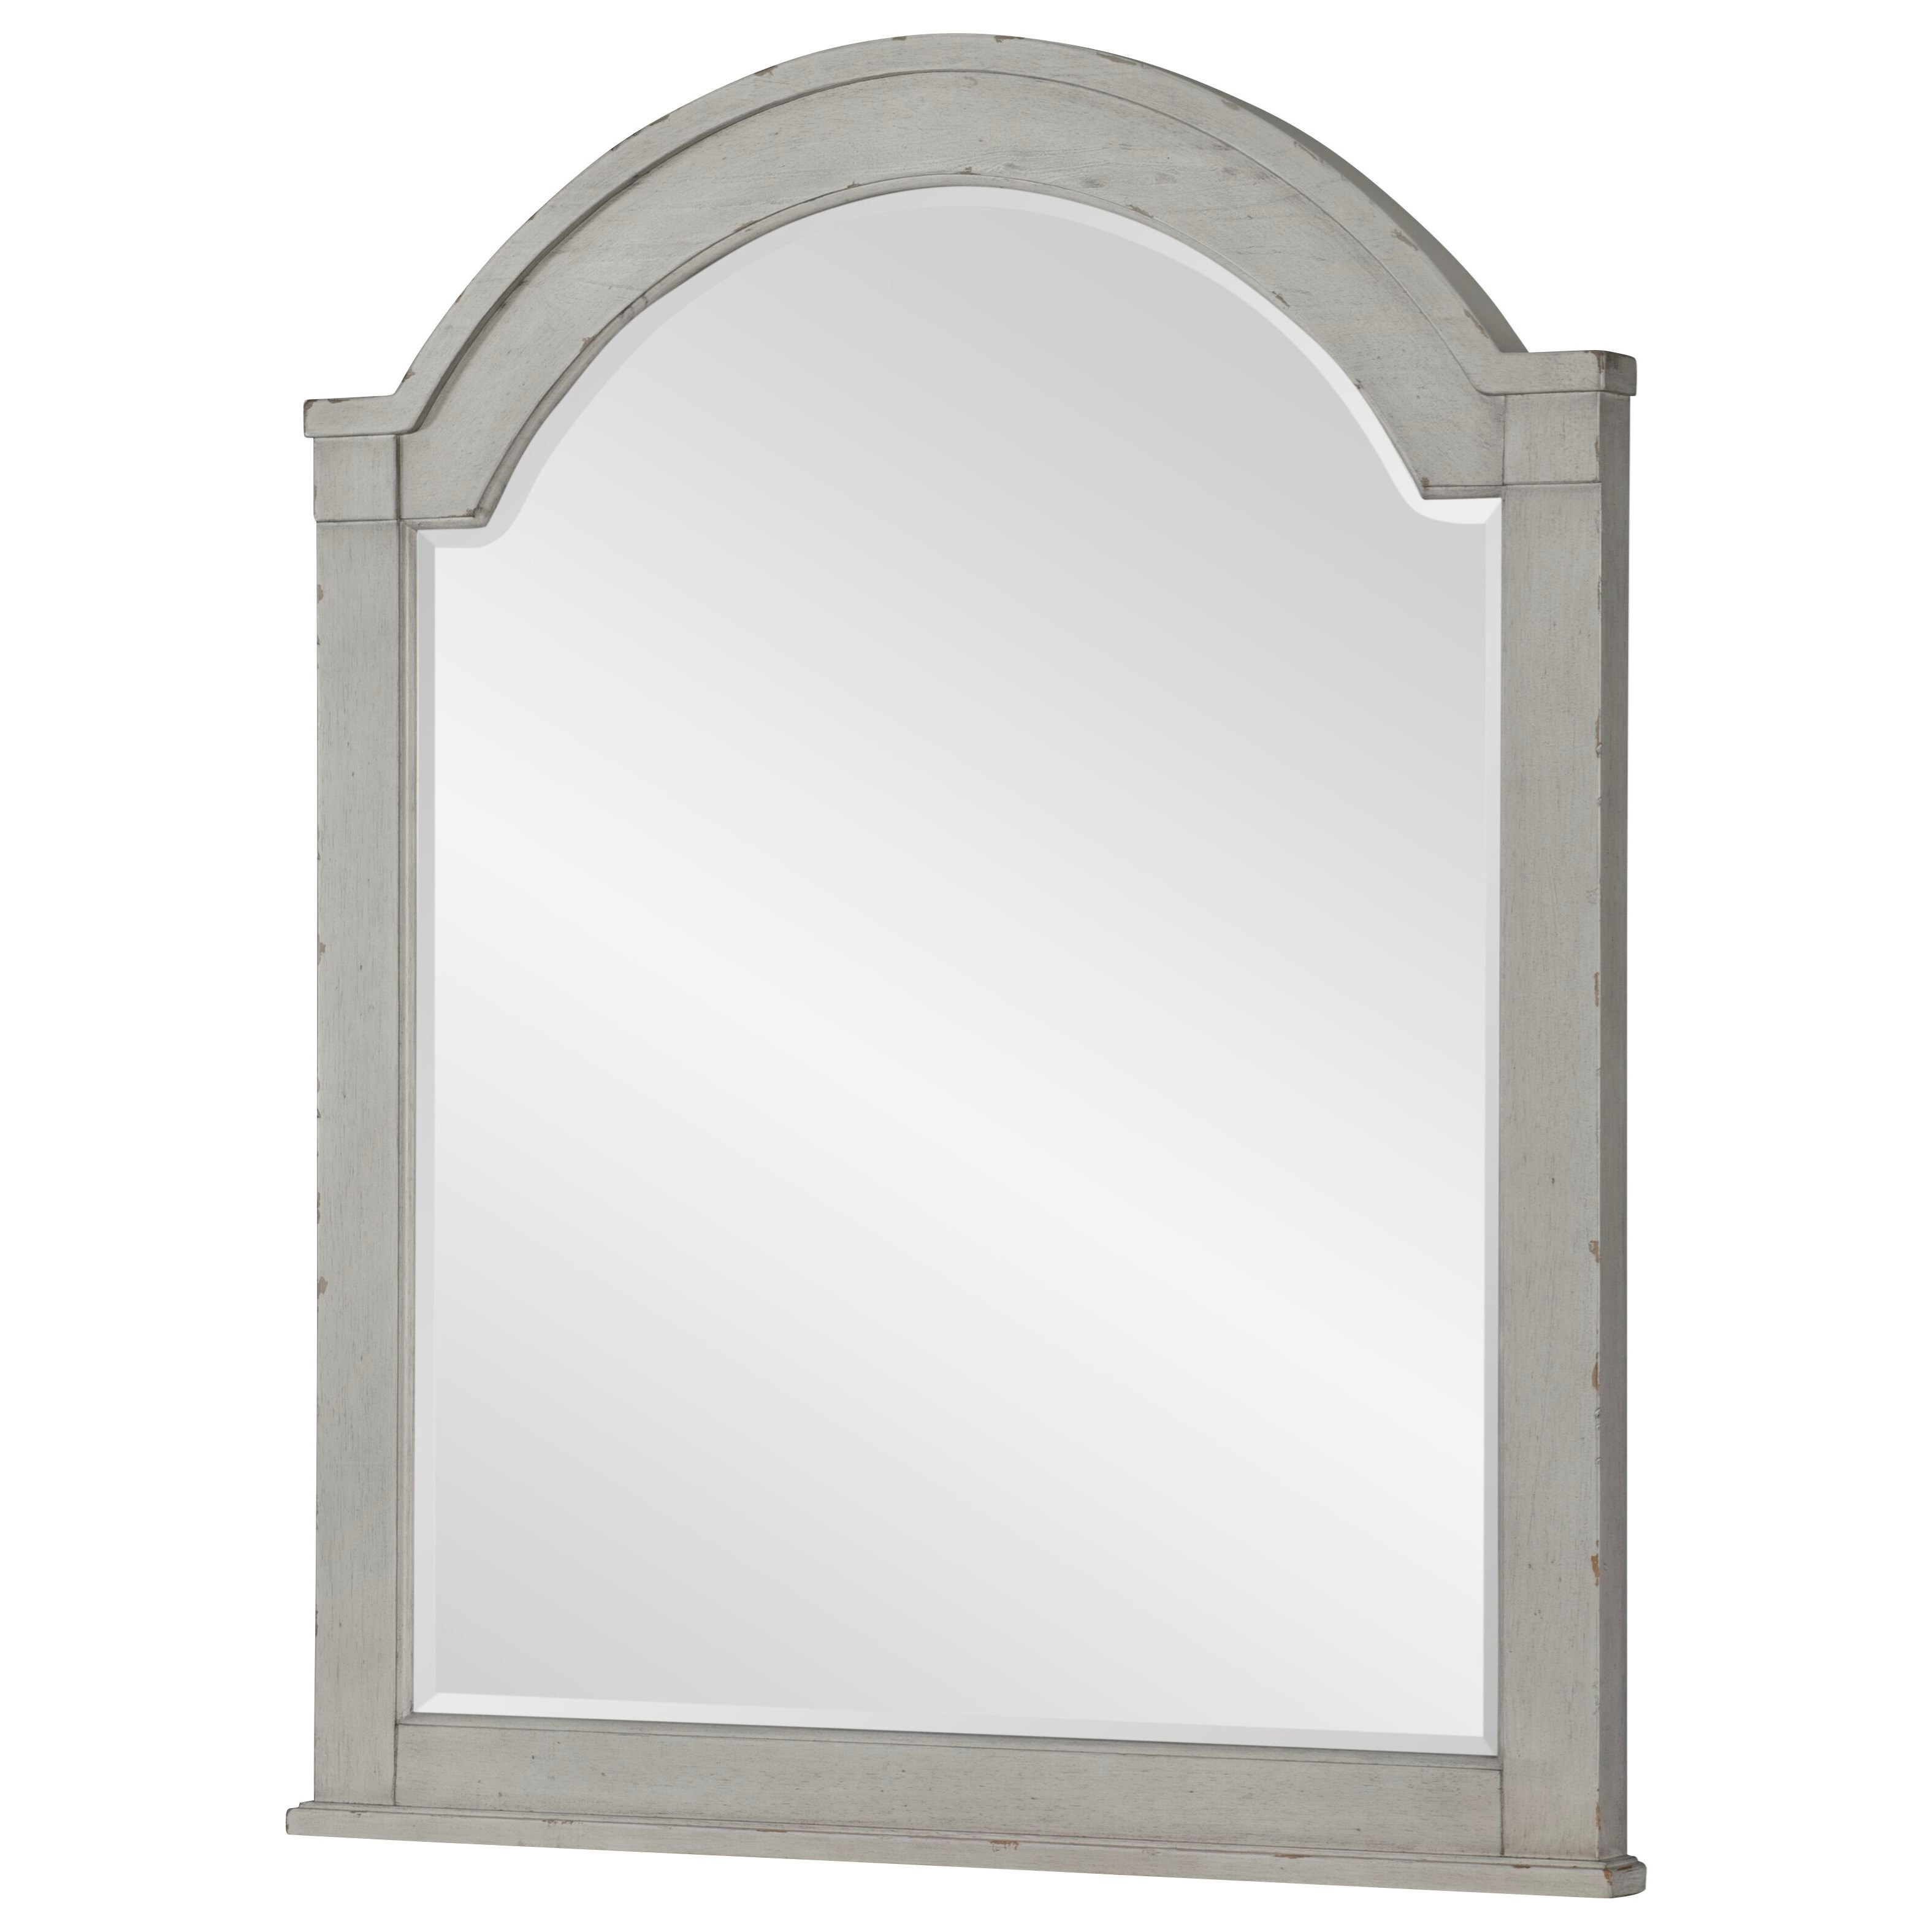 Belhaven Arched Dresser Mirror by Legacy Classic at Stoney Creek Furniture